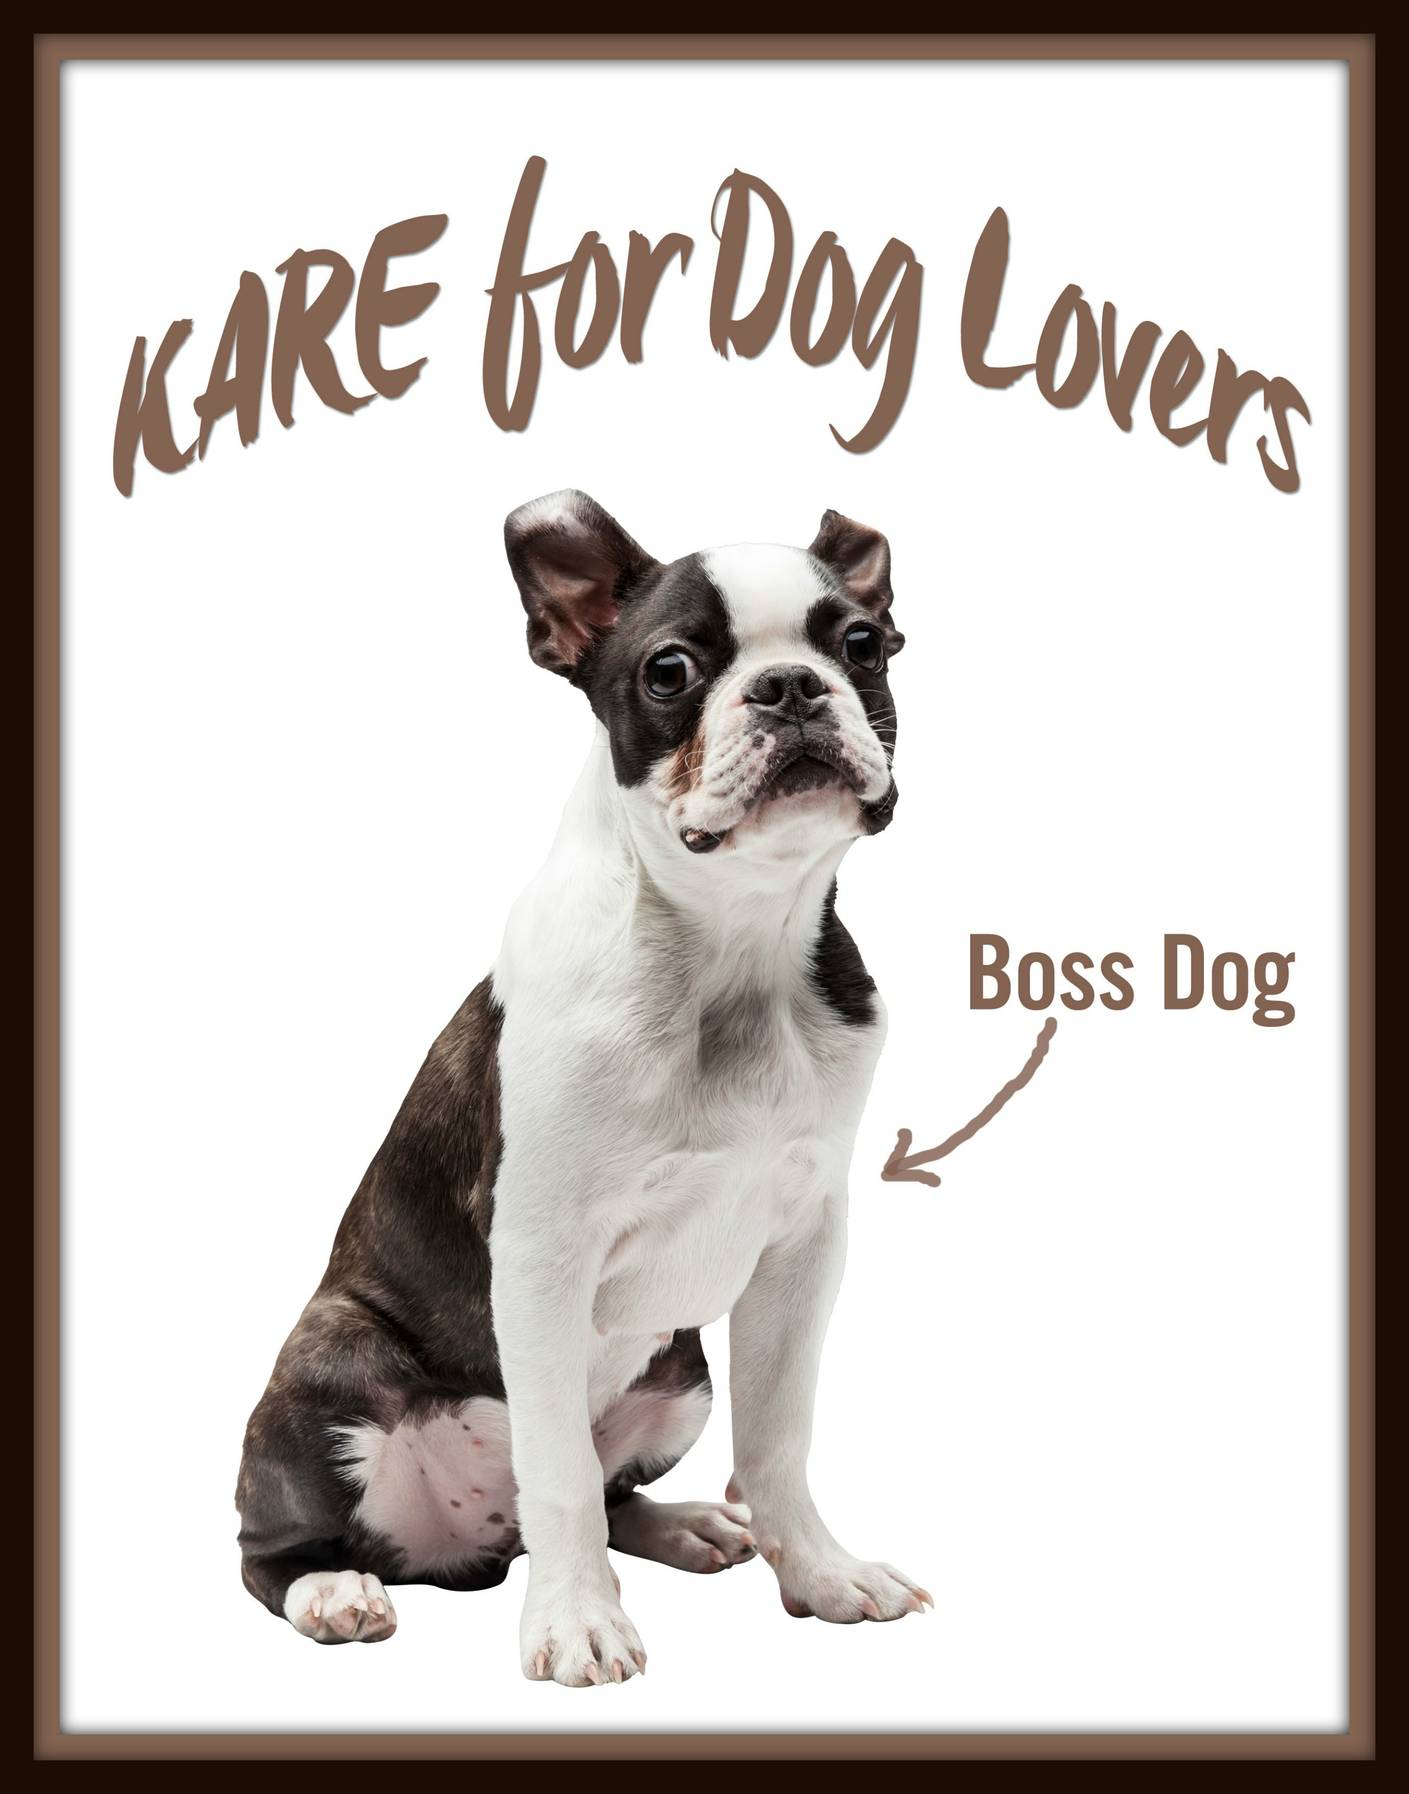 Show Your Dog Love! - The KARE Blog